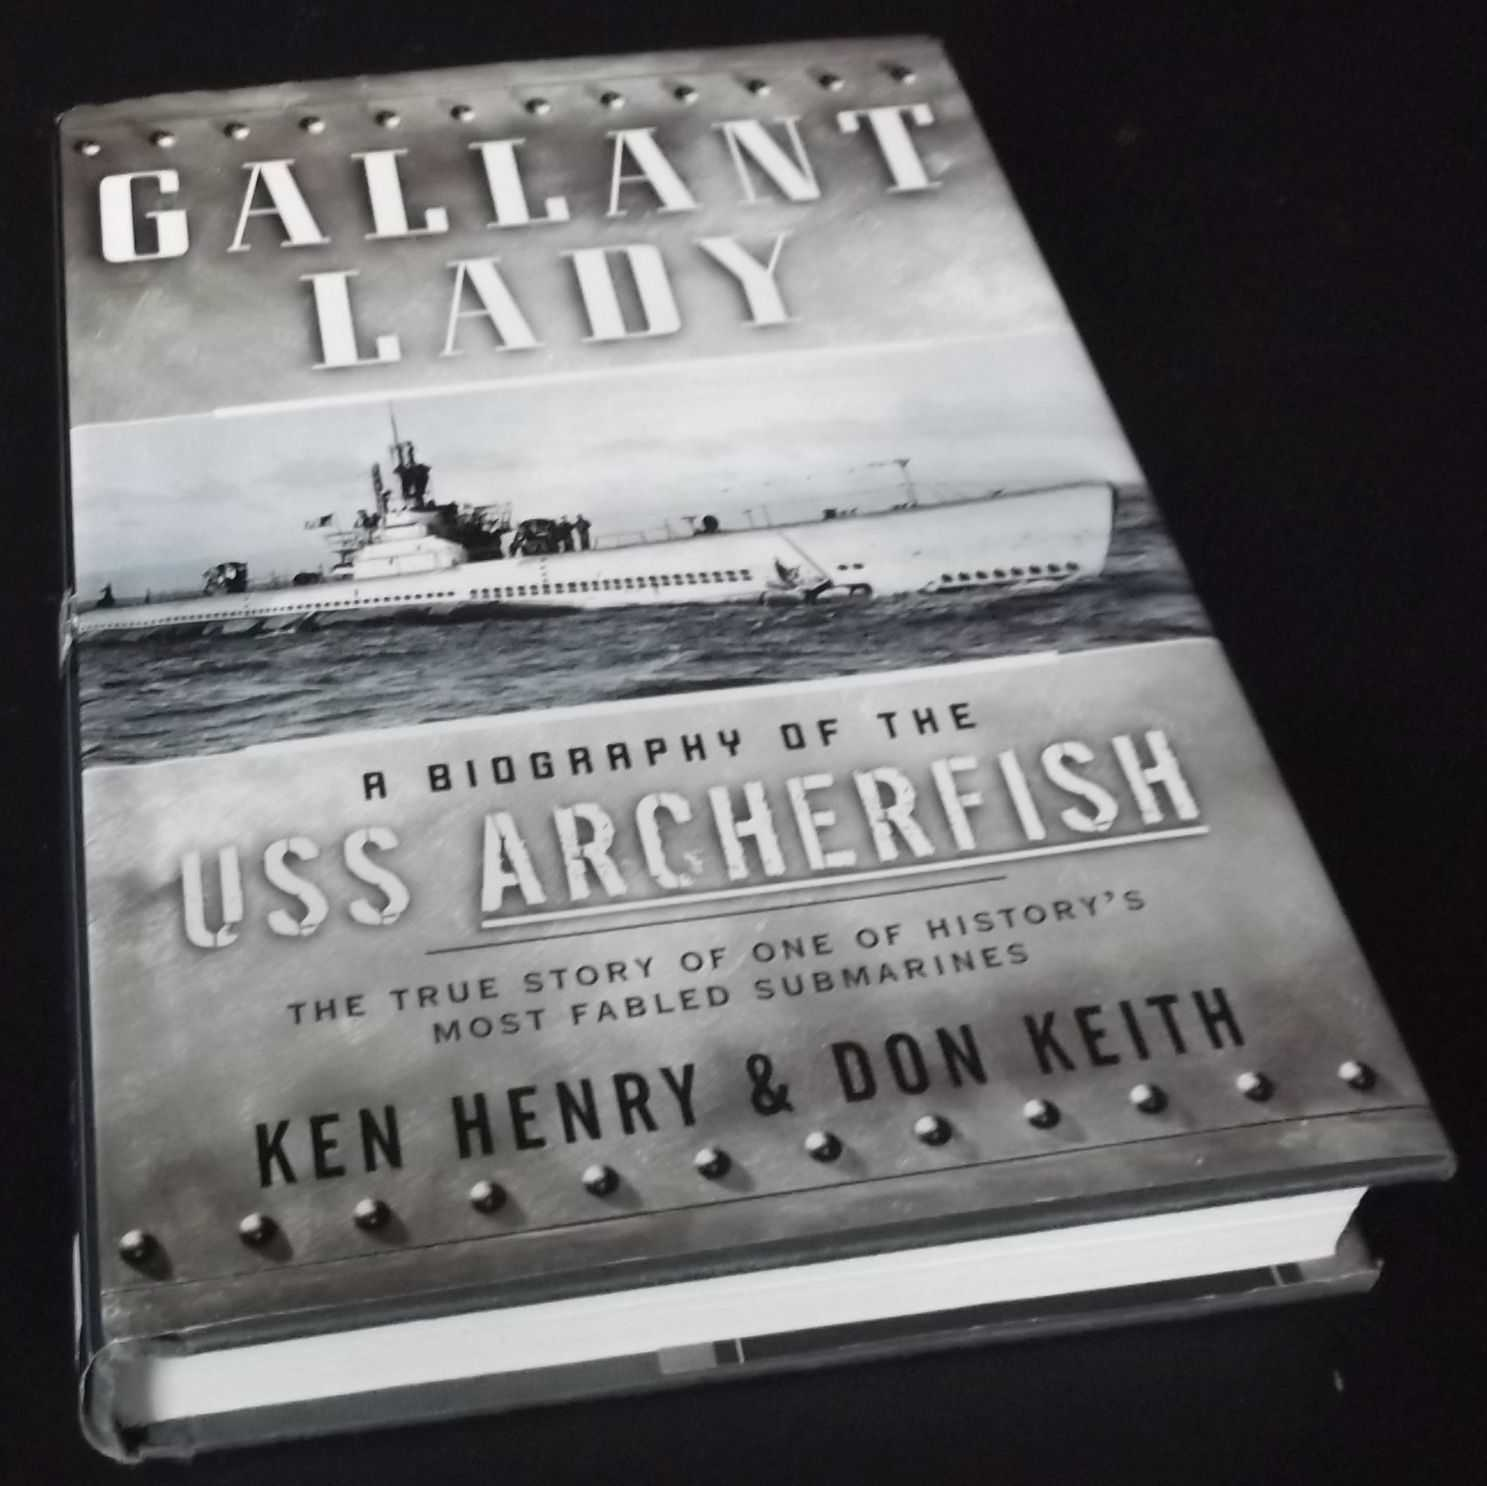 DON KEITH - Gallant Lady: A Biography of the USS Archerfish